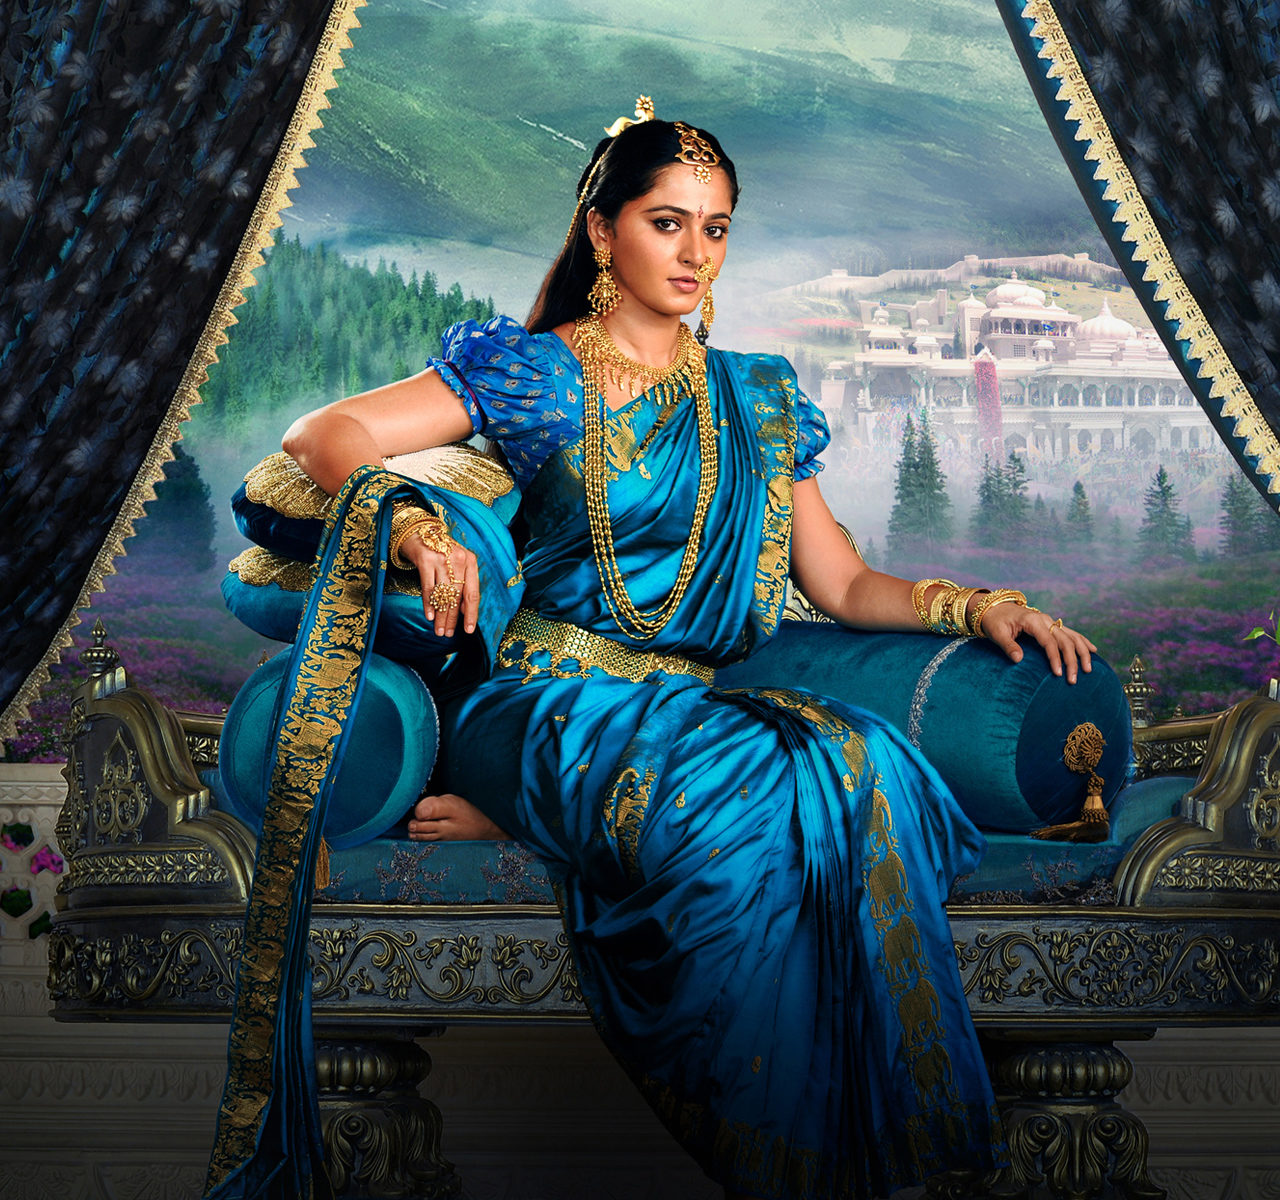 Free Hd Wallpaper For Android Tablet Anushka Shetty As Devasena In Baahubali 2 Wallpapers Hd